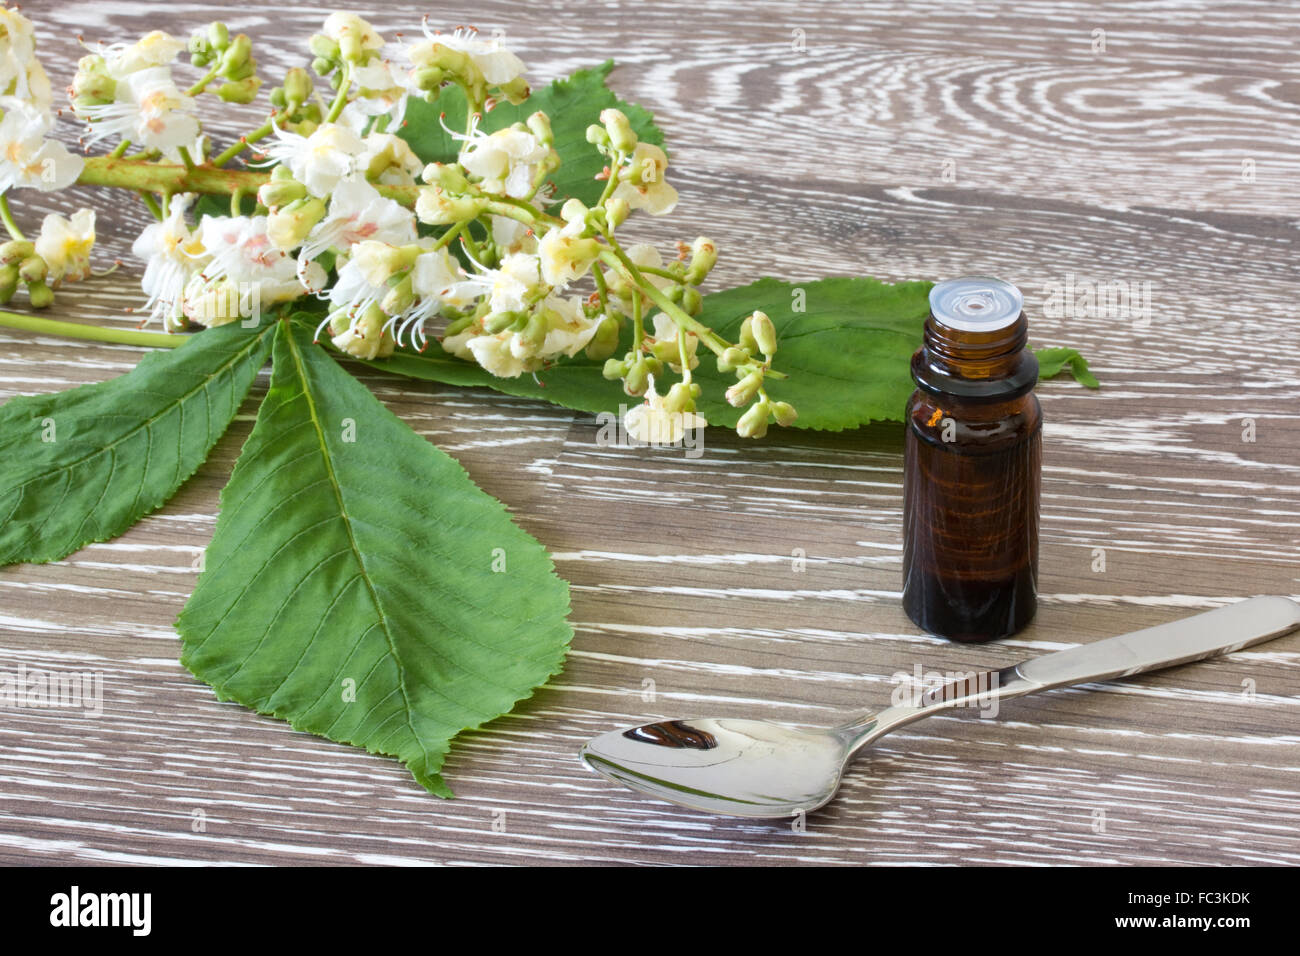 Bach flower remedies of white chestnut stock photo 93508847 alamy bach flower remedies of white chestnut mightylinksfo